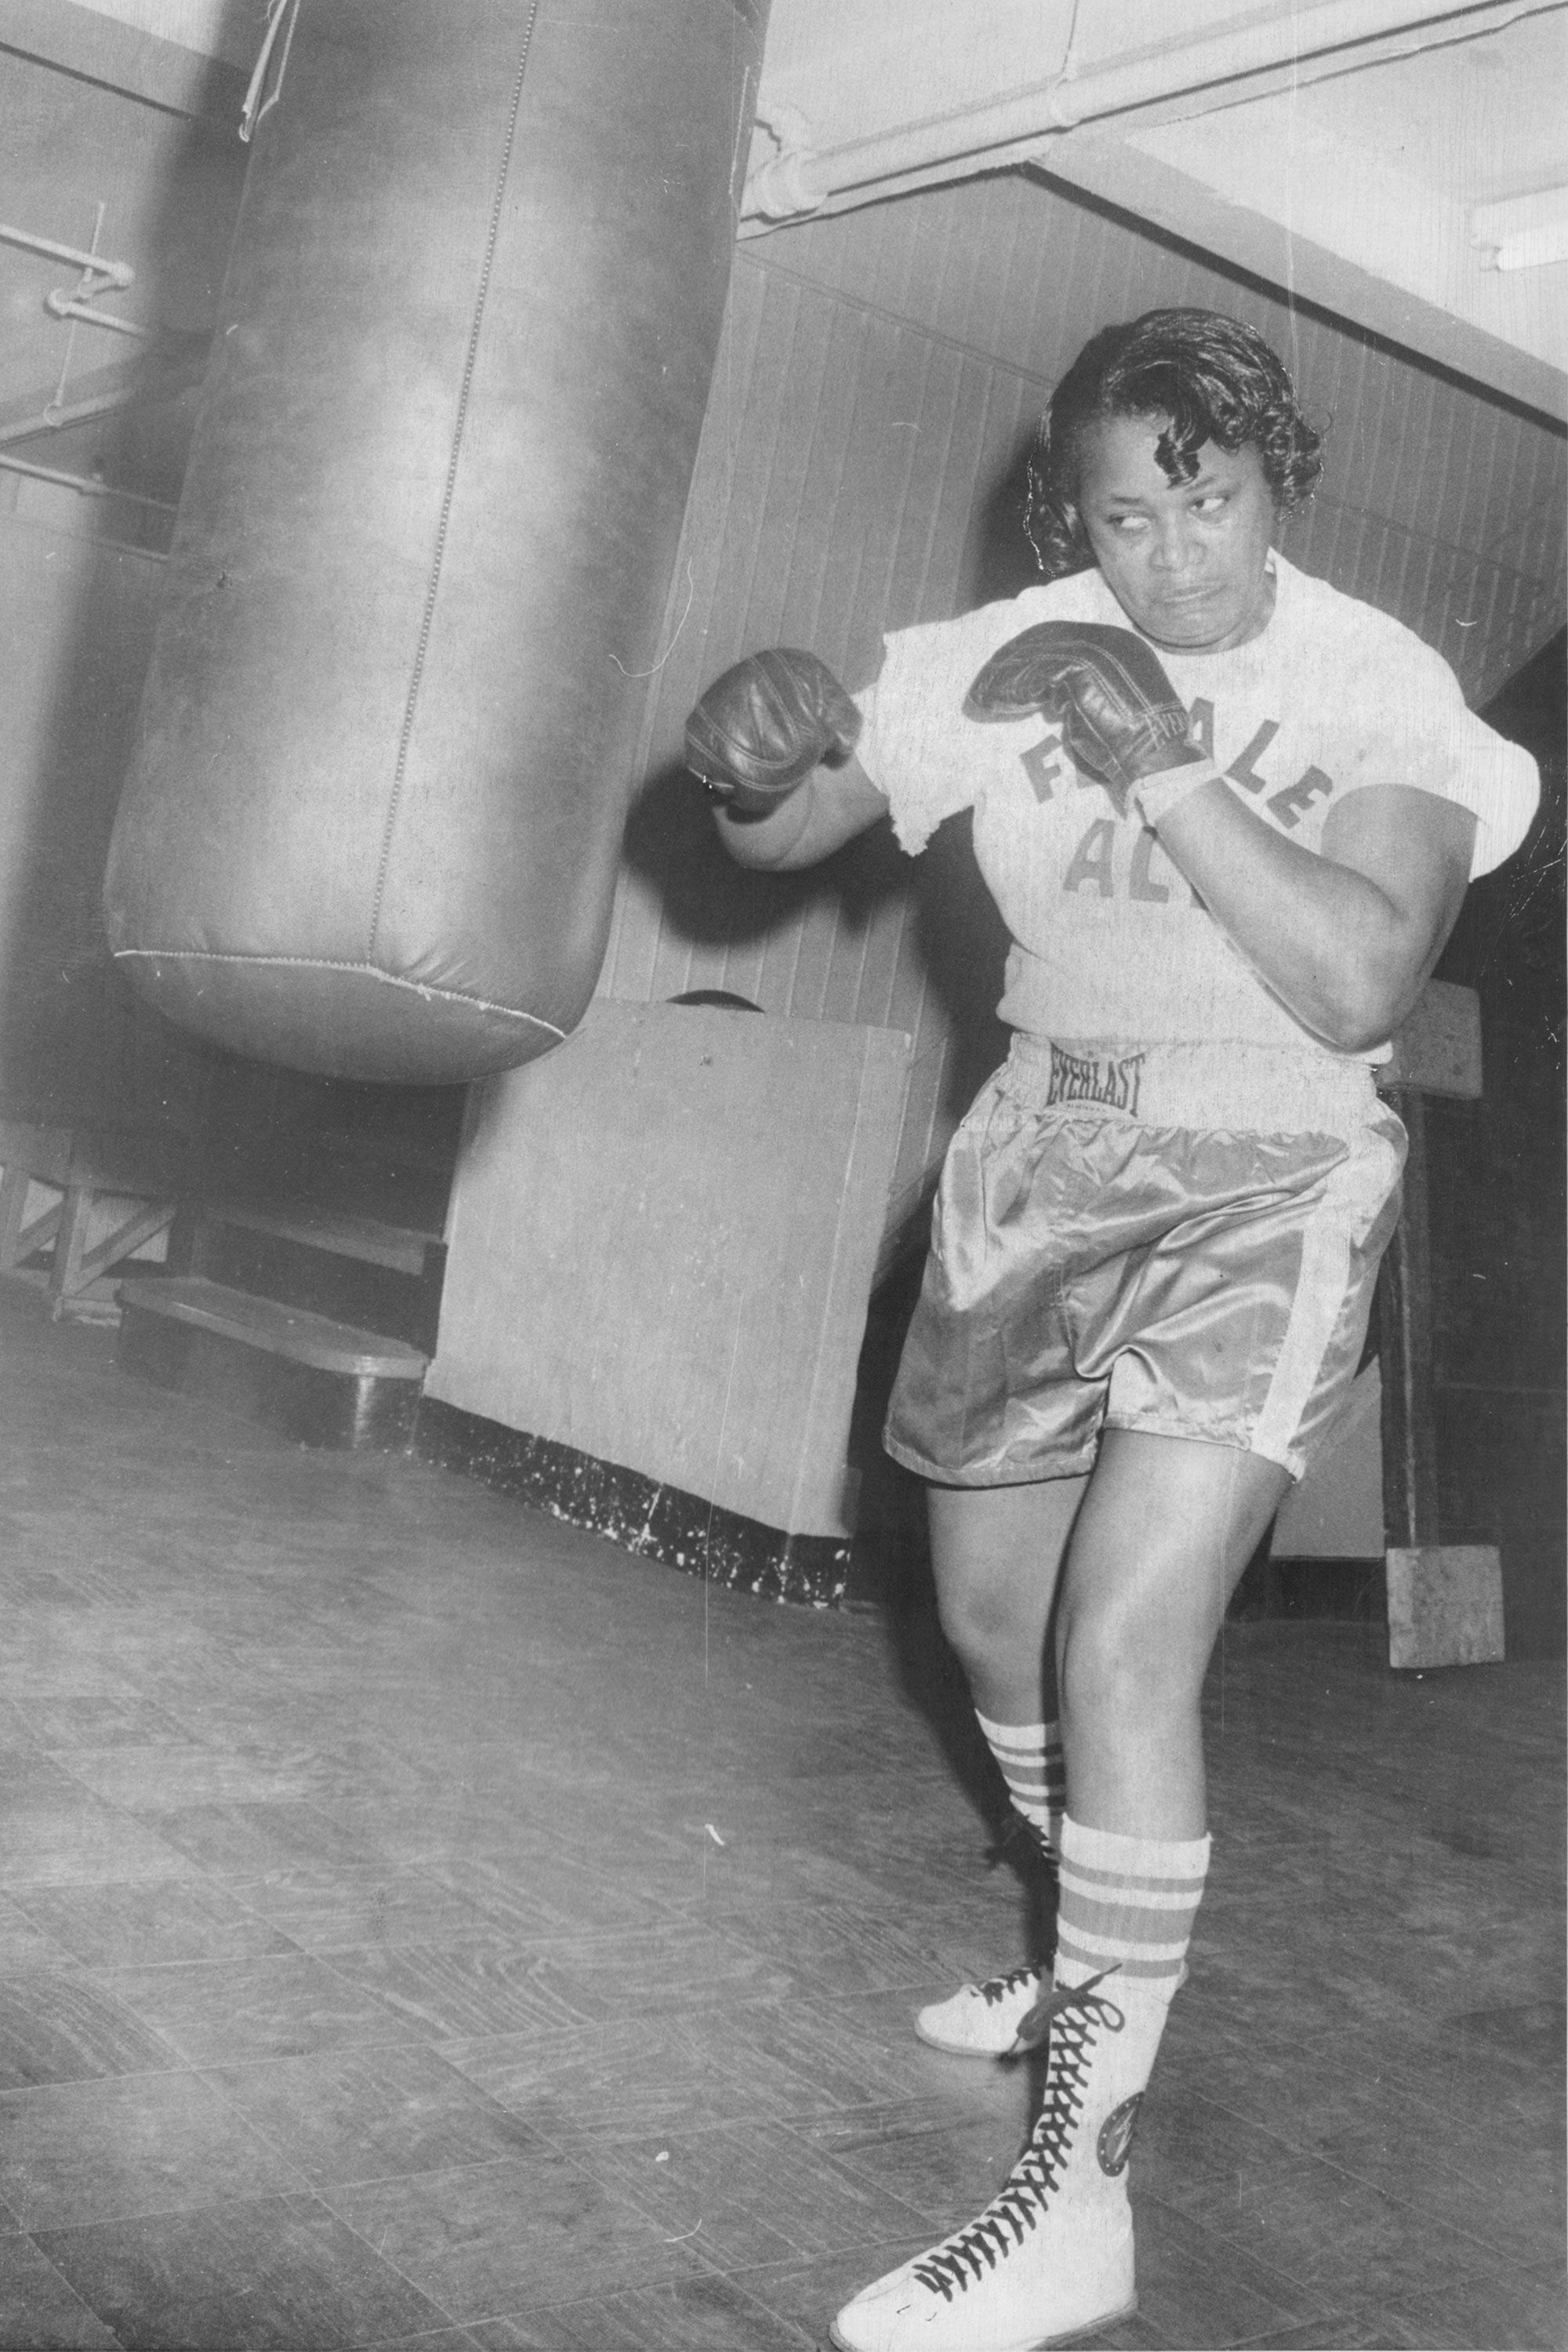 """<p>On June 8, 1975, boxer Jackie Tonawandawas the first woman to fight in New York's Madison Square Garden<span class=""""redactor-invisible-space"""" data-verified=""""redactor"""" data-redactor-tag=""""span"""" data-redactor-class=""""redactor-invisible-space"""">. She</span>went up against Larry Rodania—and knocked himout in the second round. After that, shewas dubbed """"the female Muhammad Ali.""""</p>"""